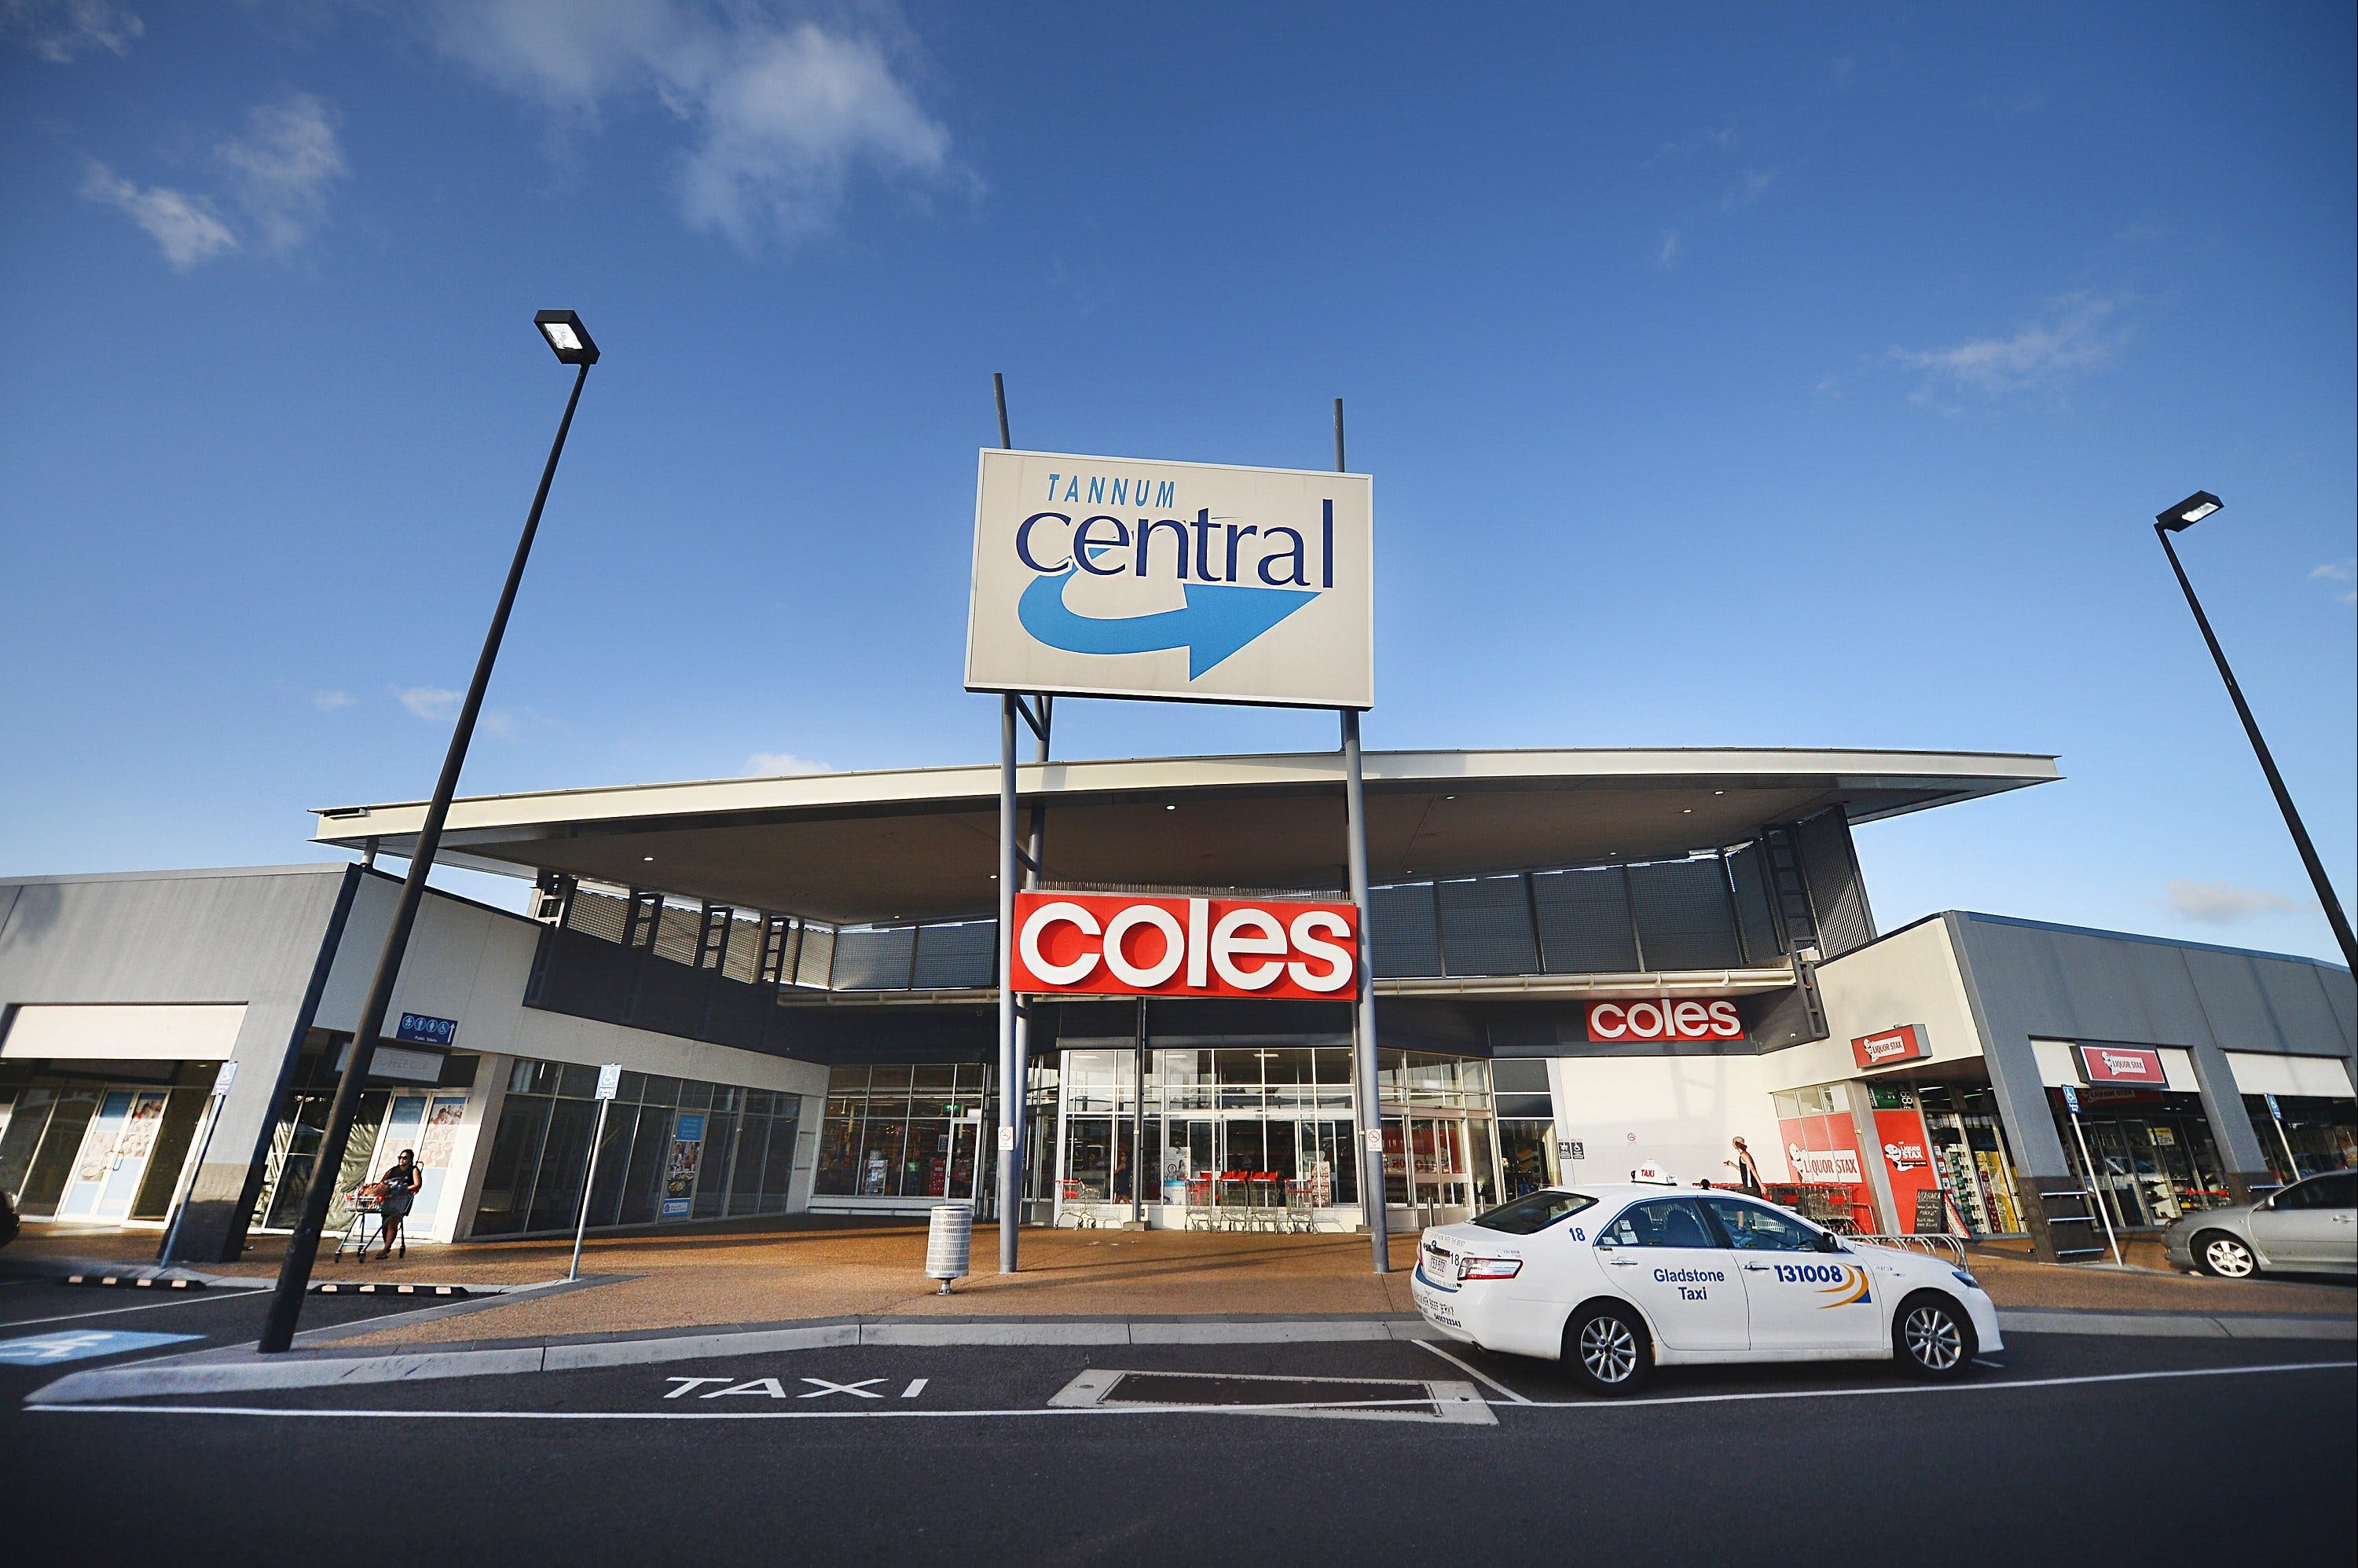 Tannum Central Shopping Centre Logo and Images